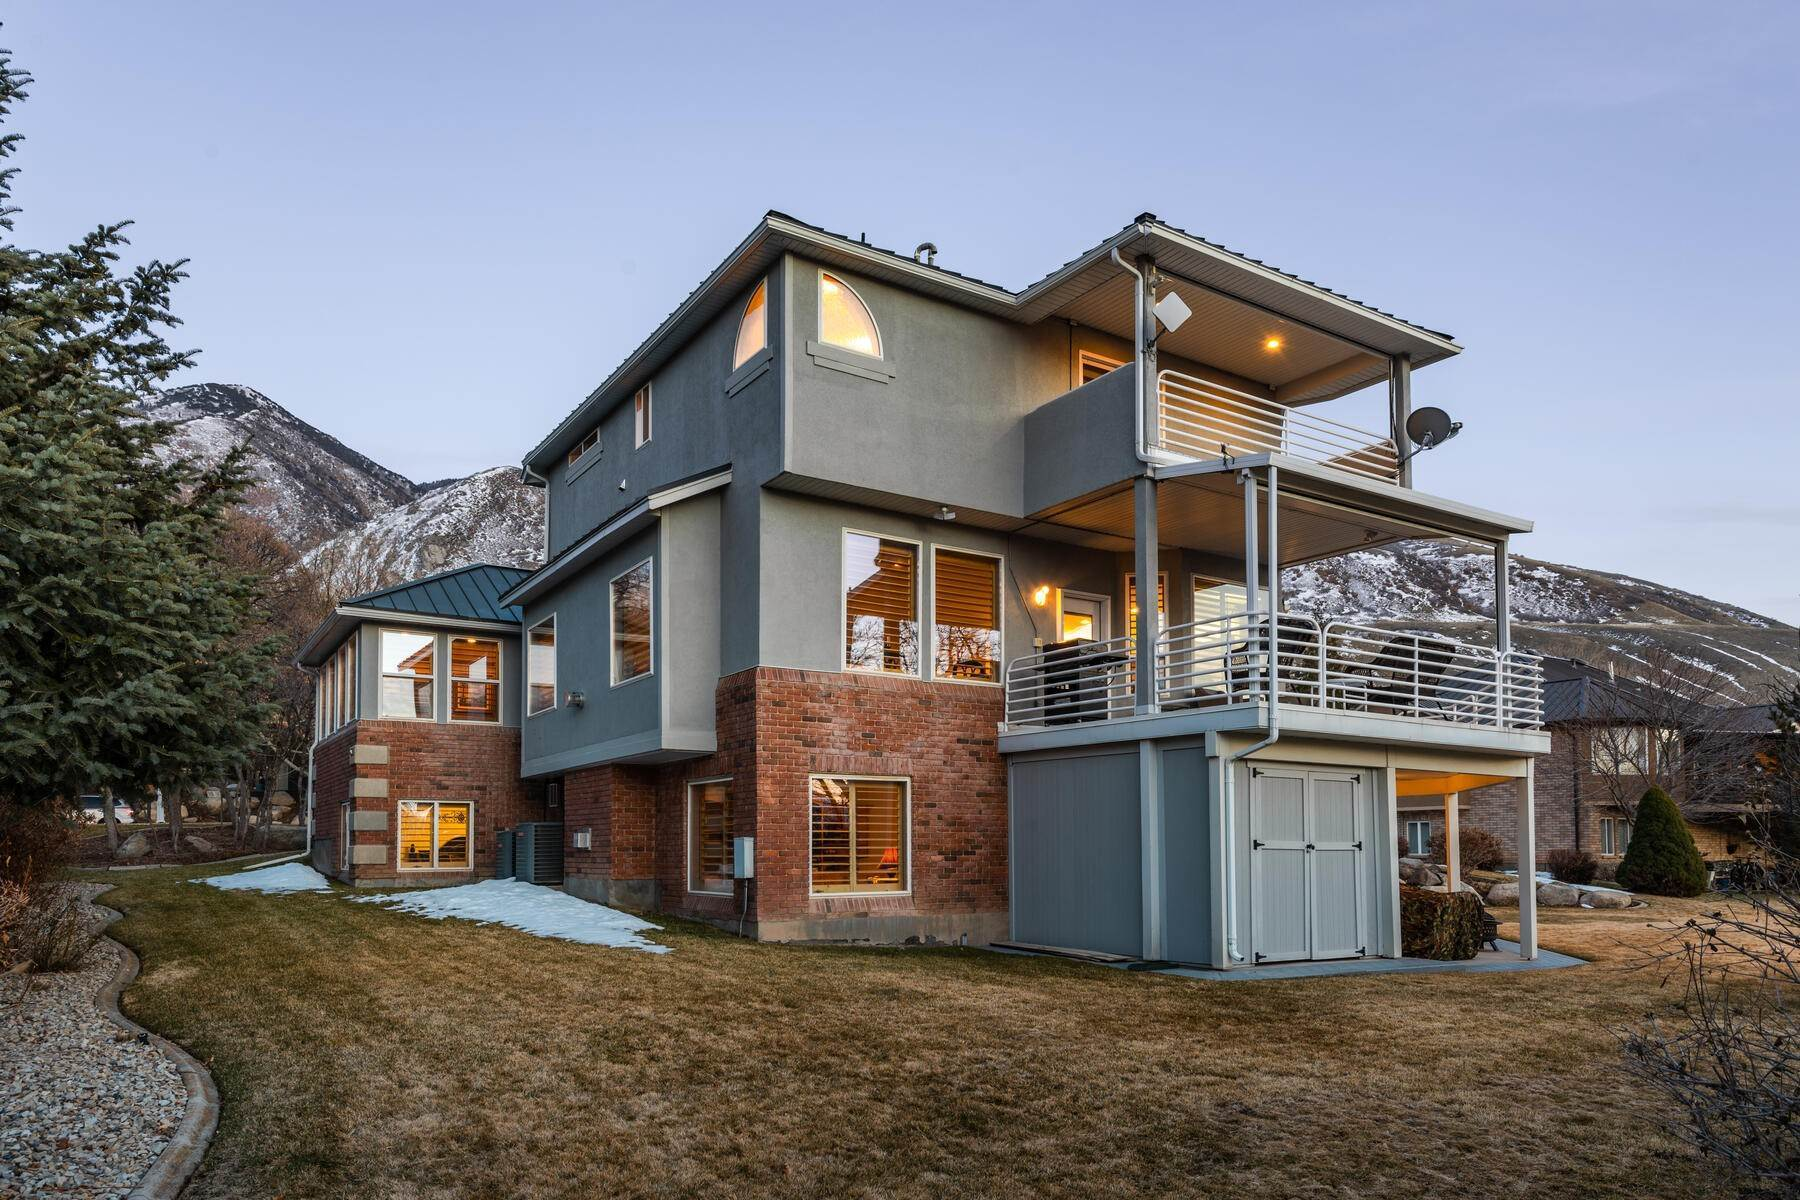 45. Single Family Homes for Sale at Beautiful 2-Story High up on Draper's East Bench 12464 S 1840 E Draper, Utah 84020 United States